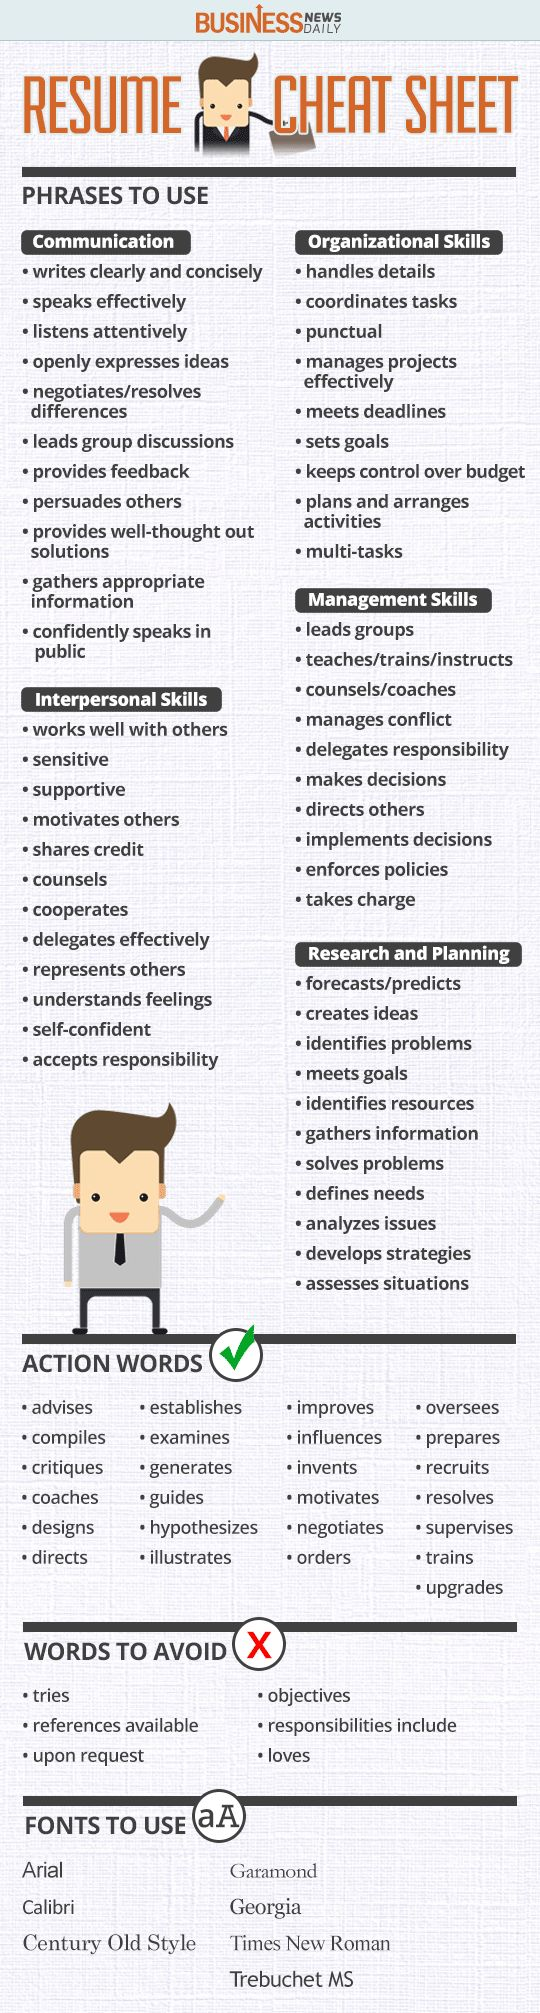 Opposenewapstandardsus  Surprising  Ideas About Resume On Pinterest  Cv Format Resume Cv And  With Licious Resume Cheat Sheet Infographic Andrews Almost Done With A Complete Unit On Employment Which With Archaic Online Resume Website Also Resume For Restaurant Server In Addition Resume Template For Pages And Cdl Driver Resume As Well As Create Your Resume Additionally Restaurant Assistant Manager Resume From Pinterestcom With Opposenewapstandardsus  Licious  Ideas About Resume On Pinterest  Cv Format Resume Cv And  With Archaic Resume Cheat Sheet Infographic Andrews Almost Done With A Complete Unit On Employment Which And Surprising Online Resume Website Also Resume For Restaurant Server In Addition Resume Template For Pages From Pinterestcom